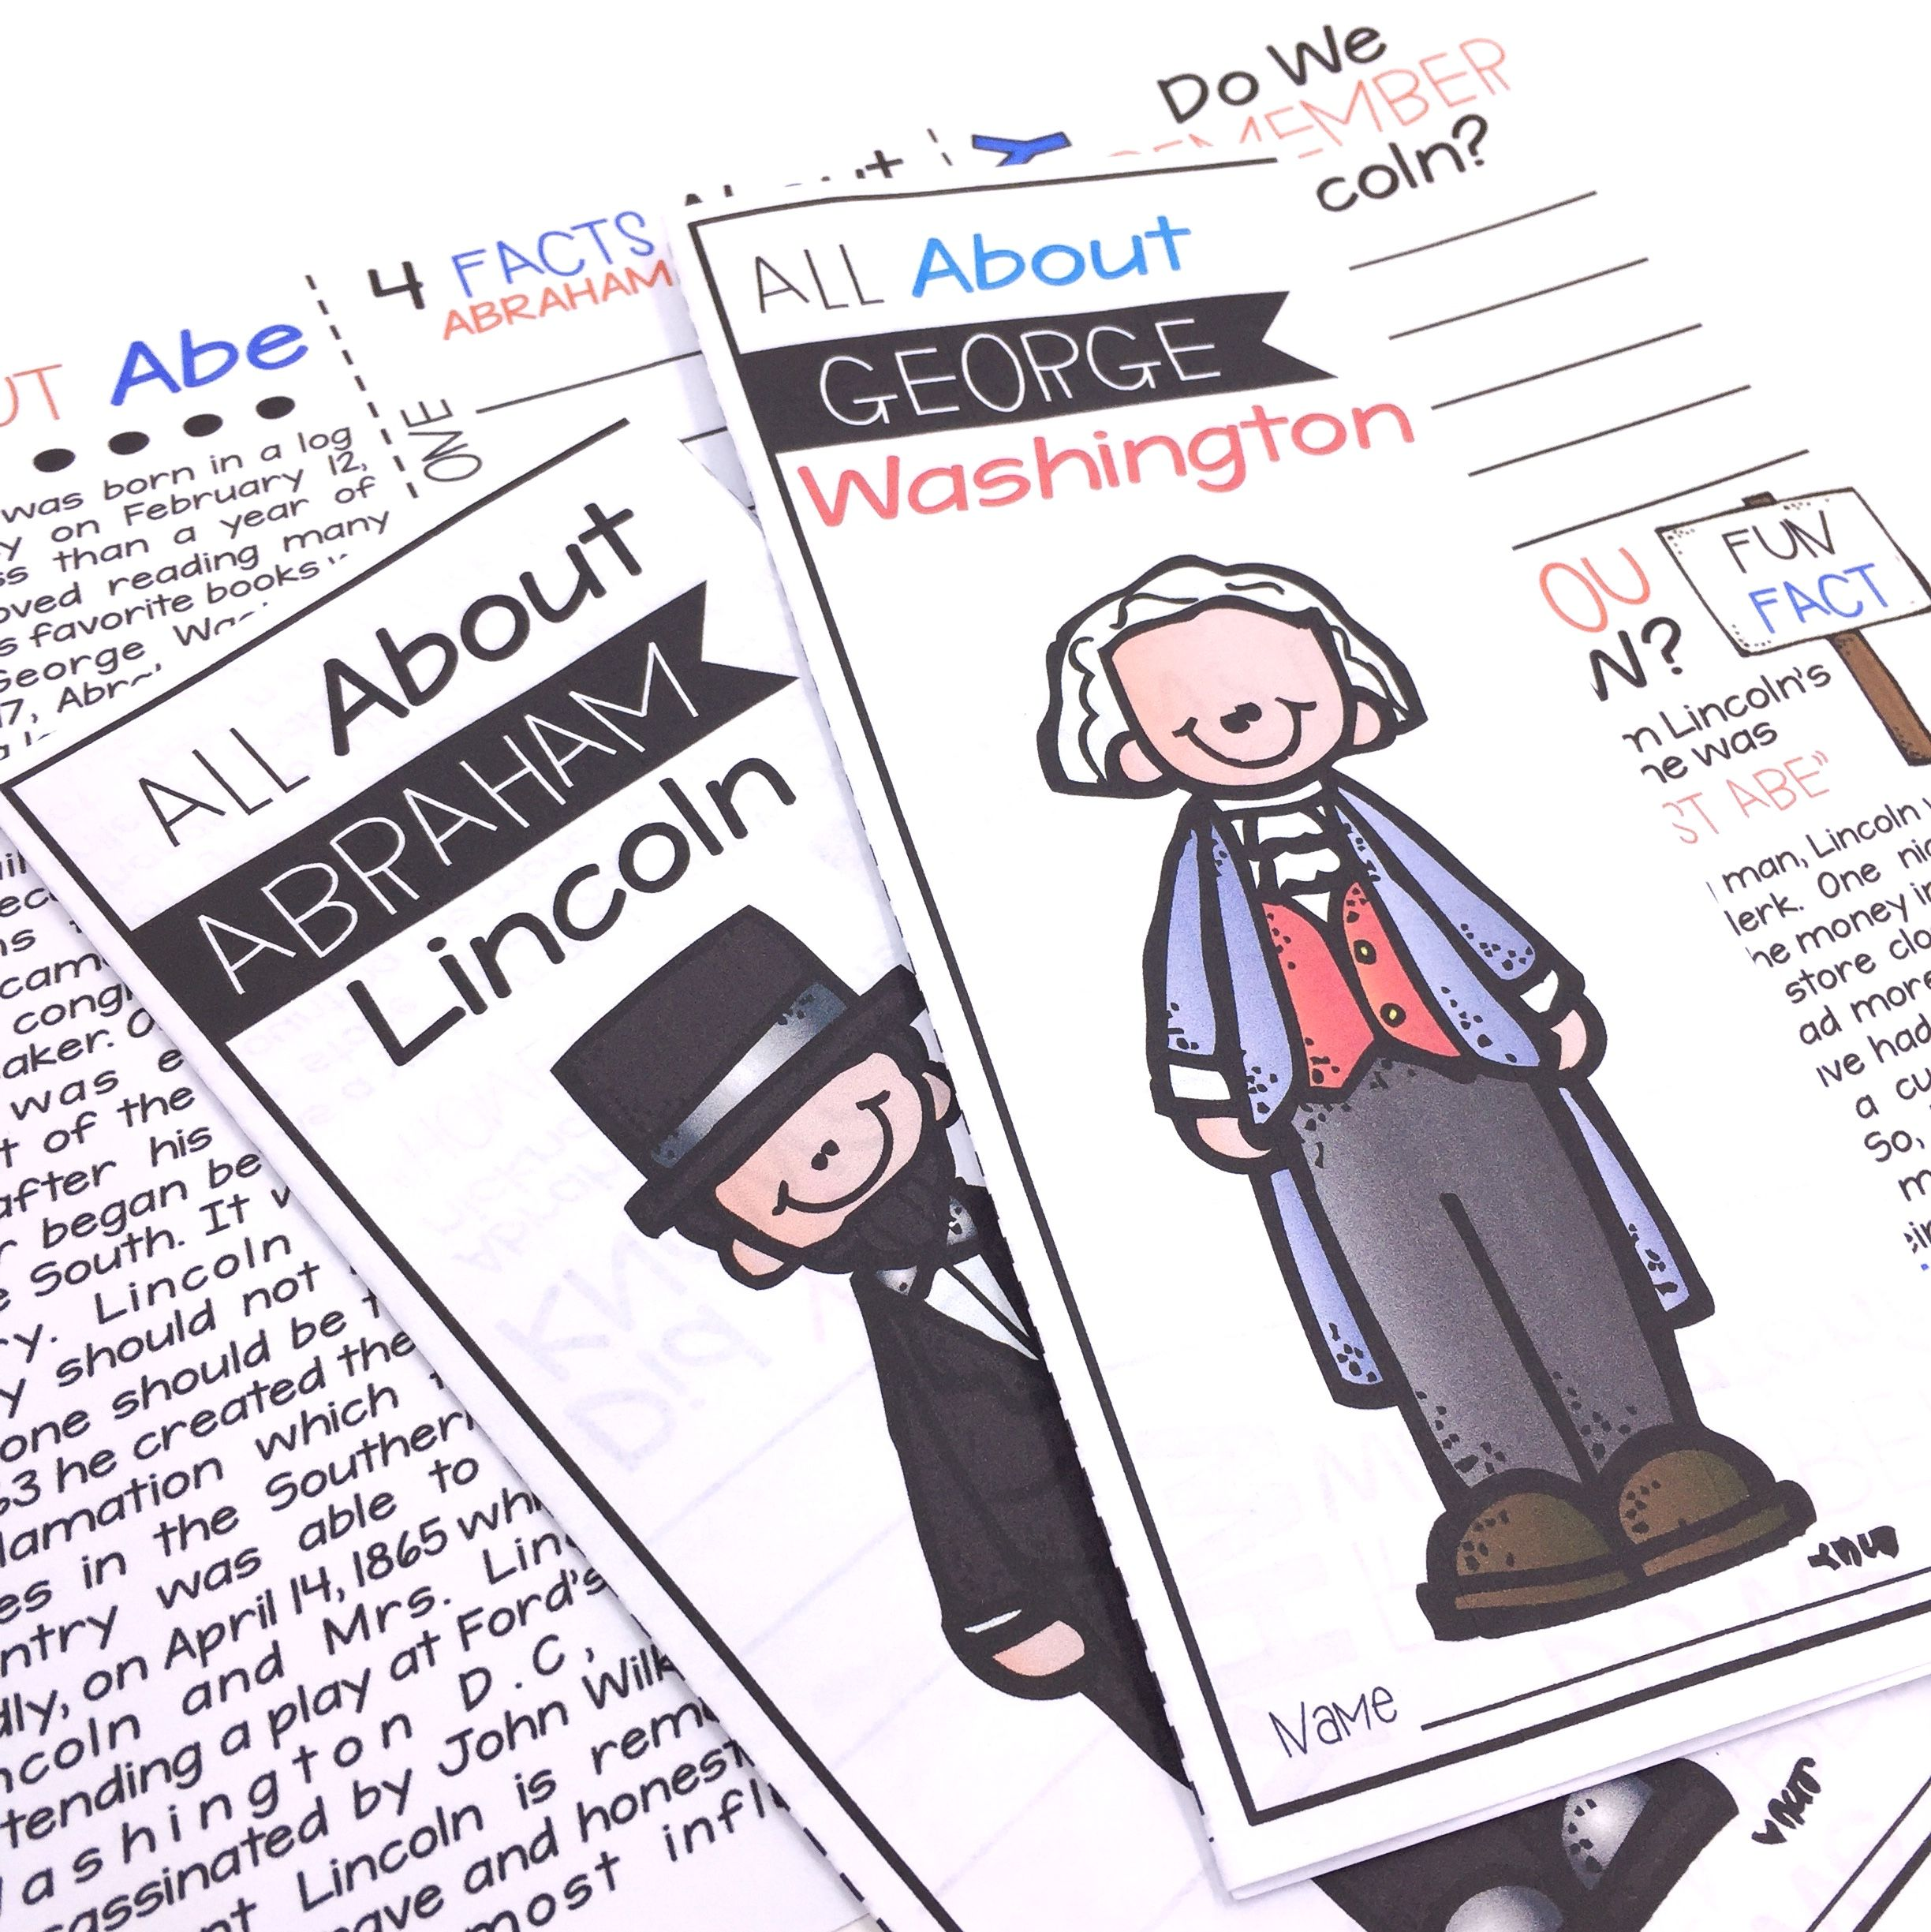 These brochures will help your students learn all our American heroes! You'll find engaging close reads, comprehension questions, timelines, and more within this brochure! Easy prep, just print and fold!